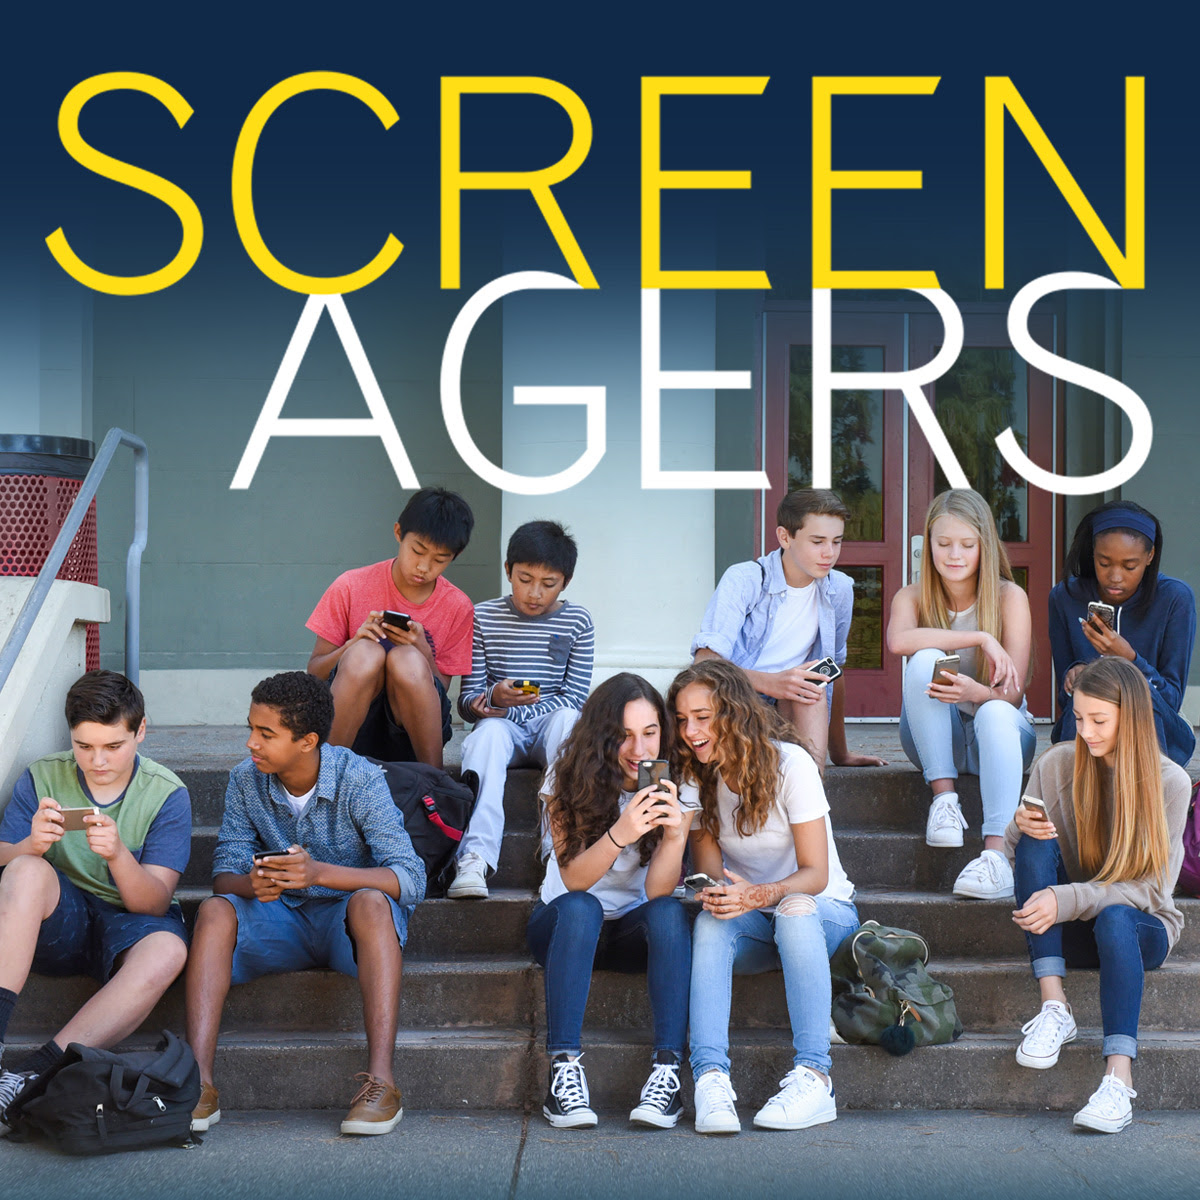 Screenagers Film Presented By North Arvada Middle School